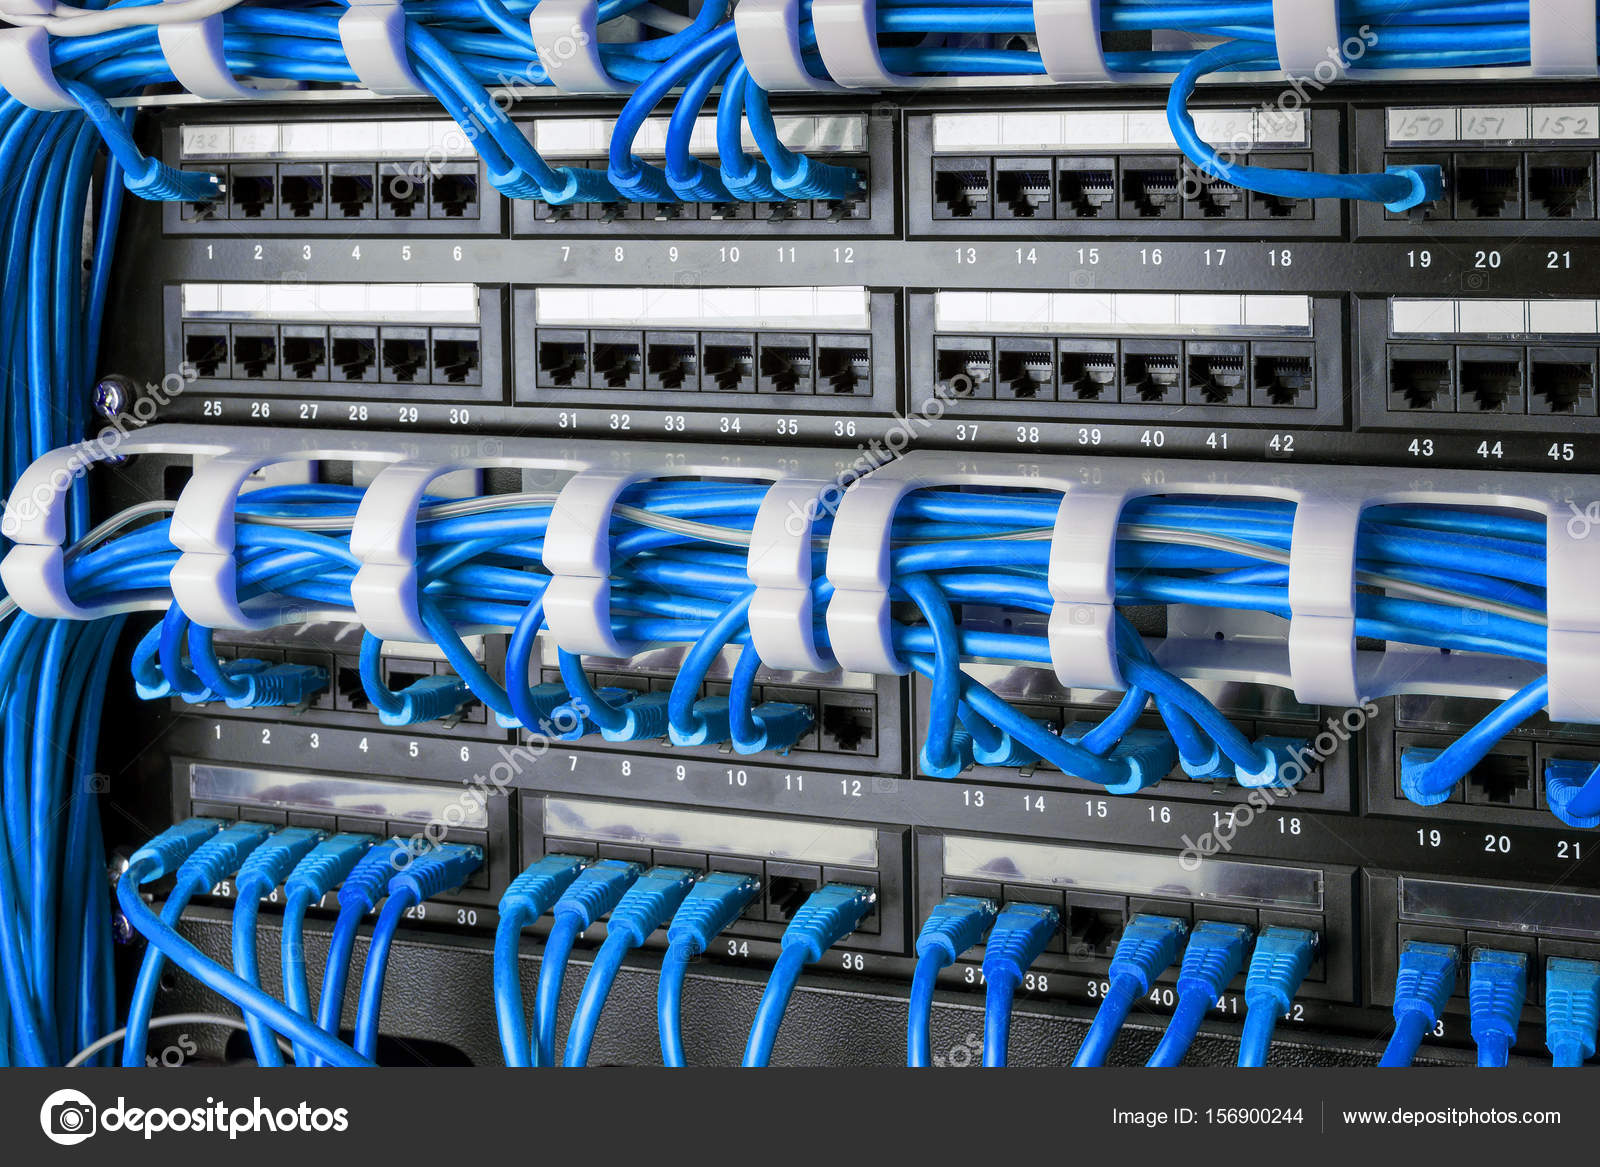 Network Panel Switch And Internet Cable In Data Center Black Networking Ethernet Wiring Blue Cables Concept Photo By Angelus Liam